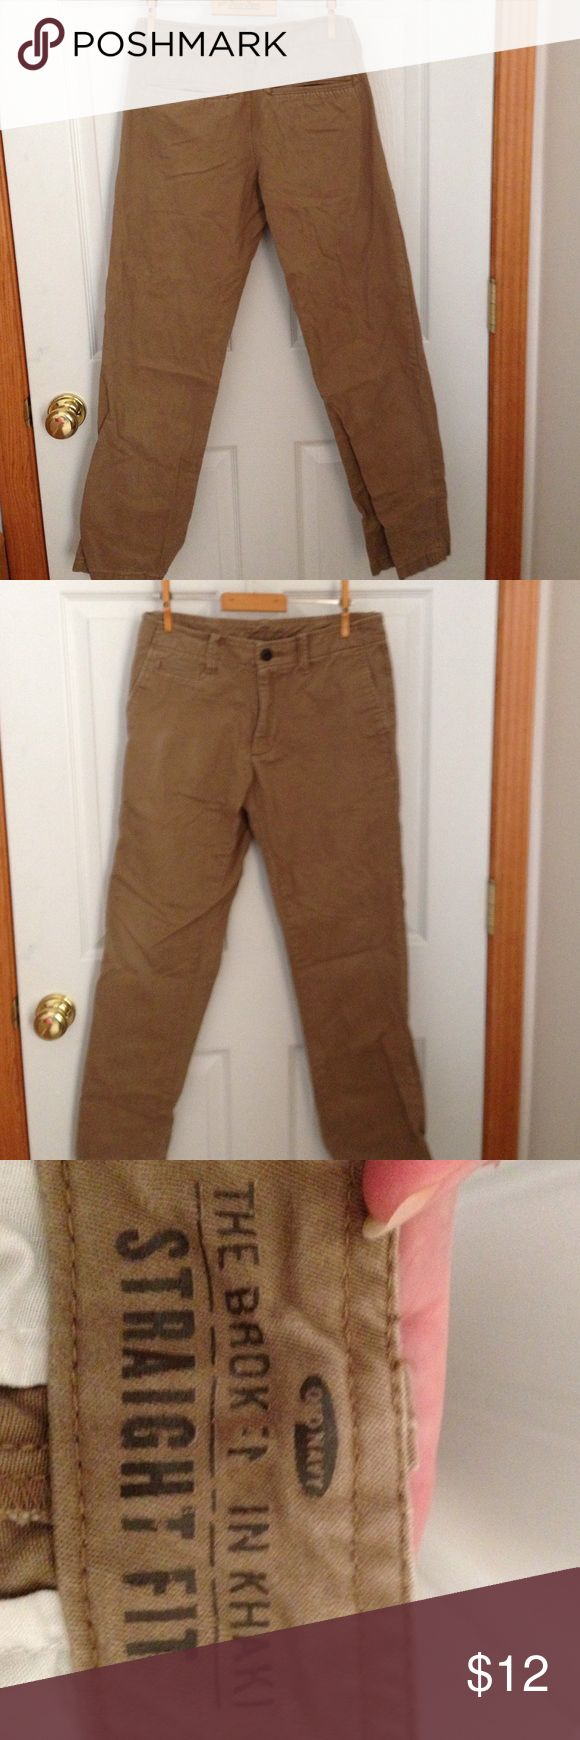 Old Navy Men's Khaki pants Old Navy men's khaki pants straight fit size 28x30. Excellent condition just need to be ironed. Old Navy Pants Chinos & Khakis